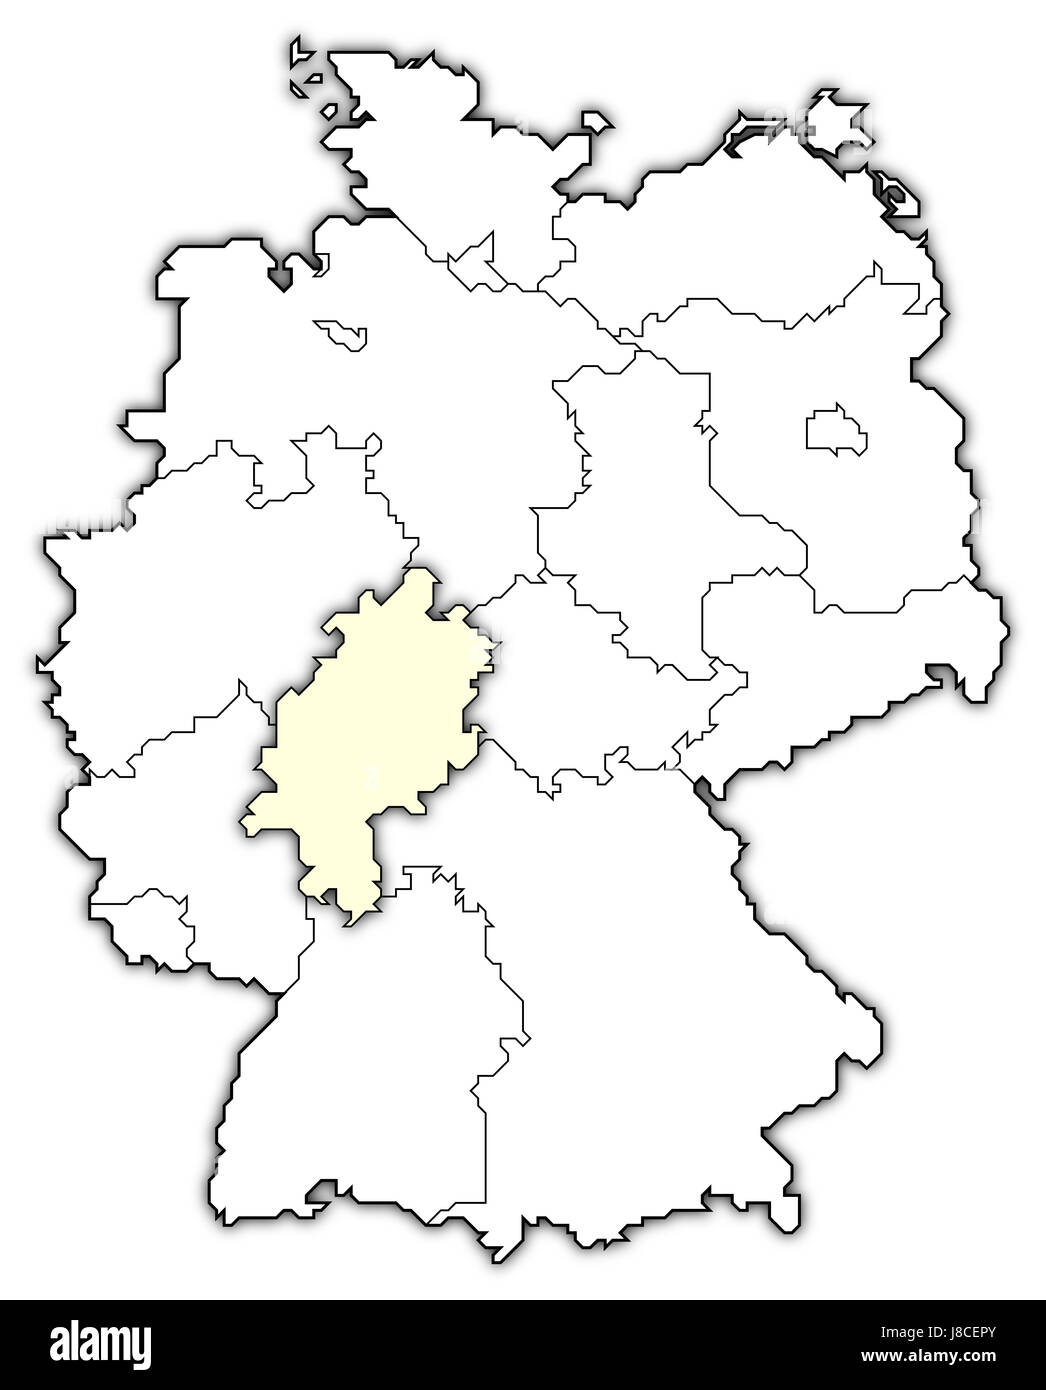 map of germany,hesse highlighted - Stock Image